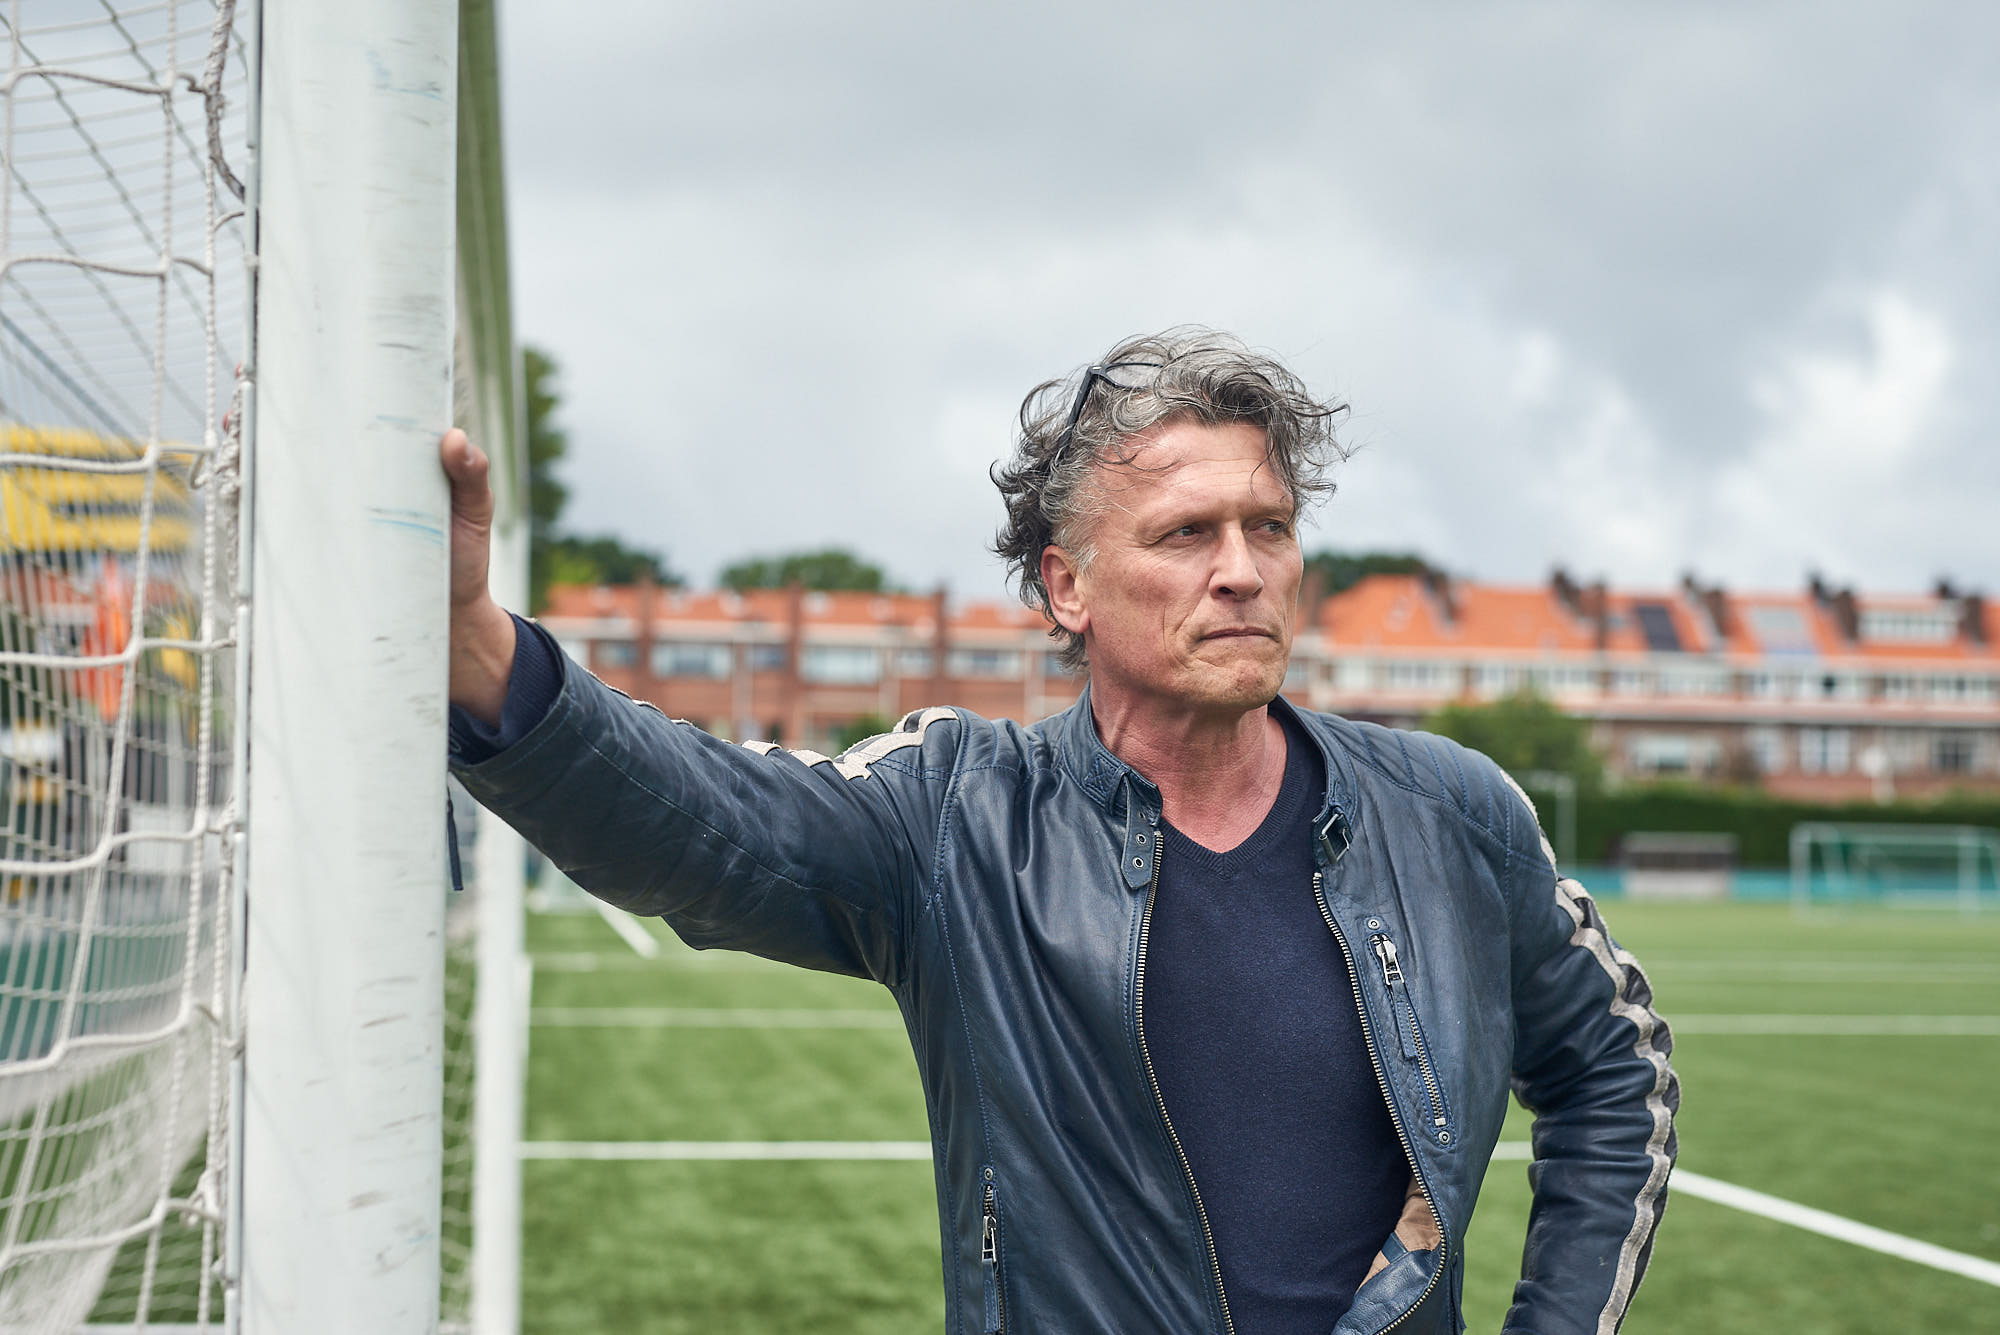 Bas Westerweel for Dutch Hartstichting